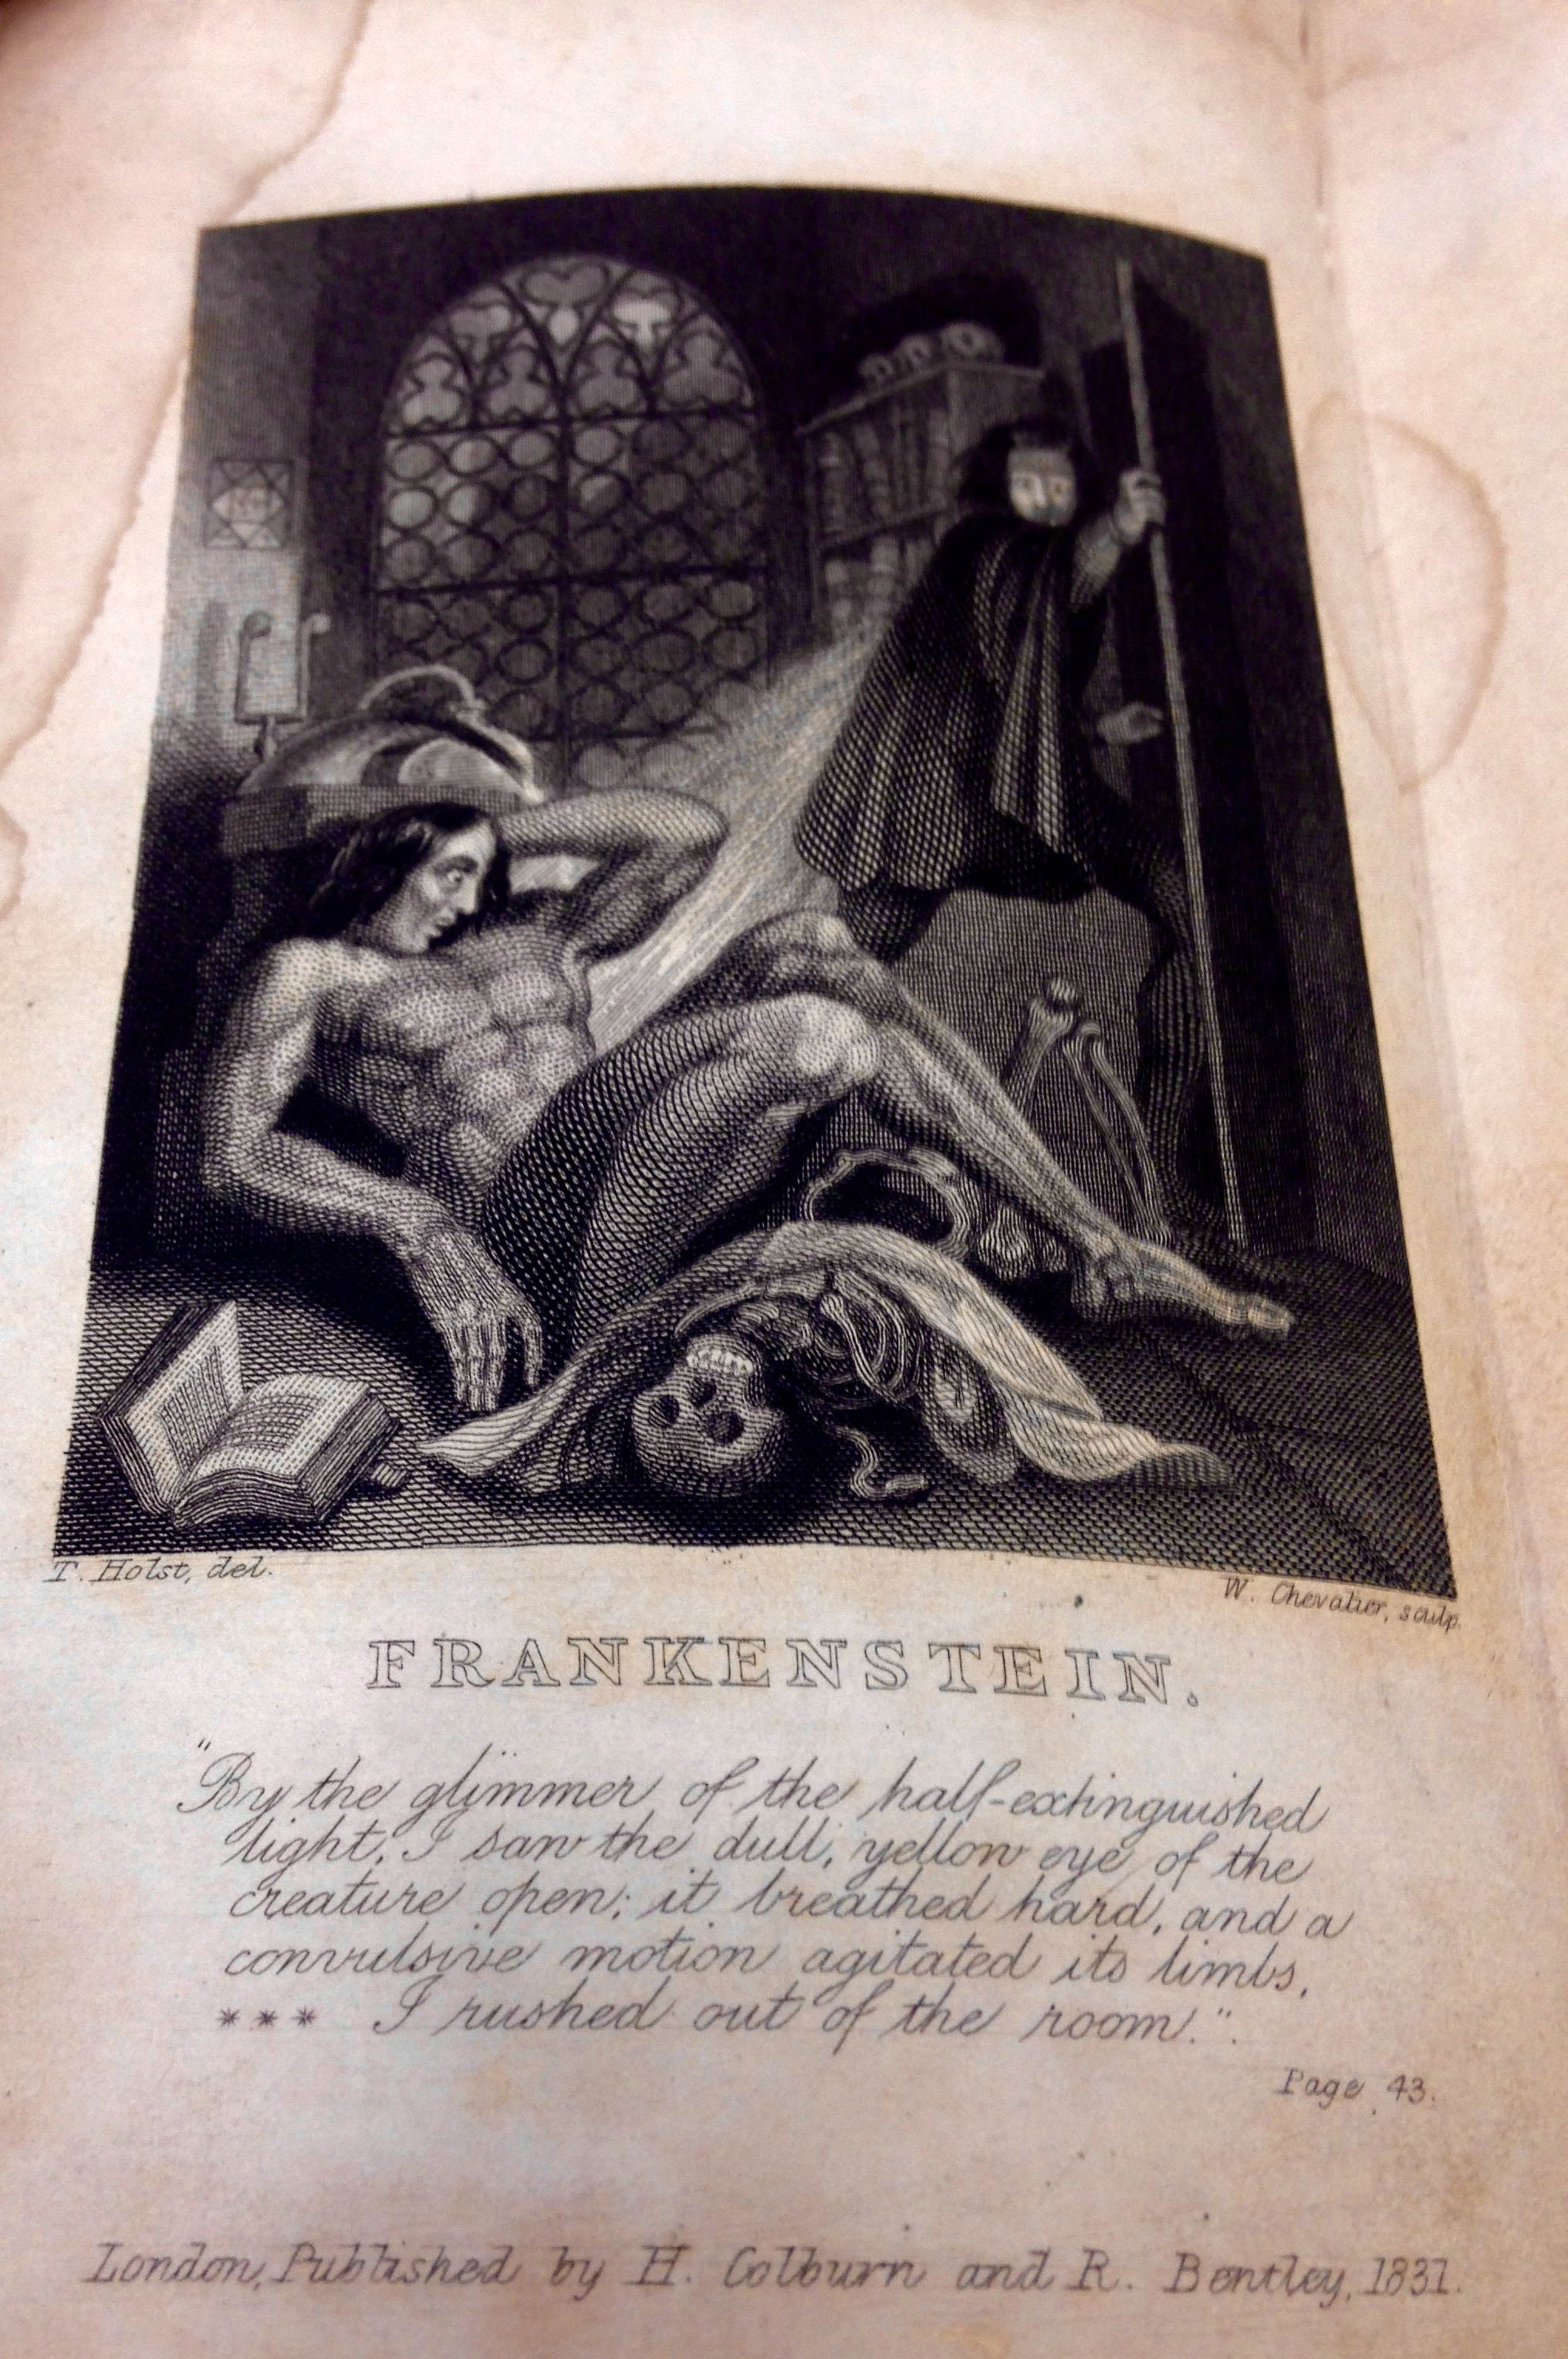 Image from Inside Cover of Frankenstein 1831 edition